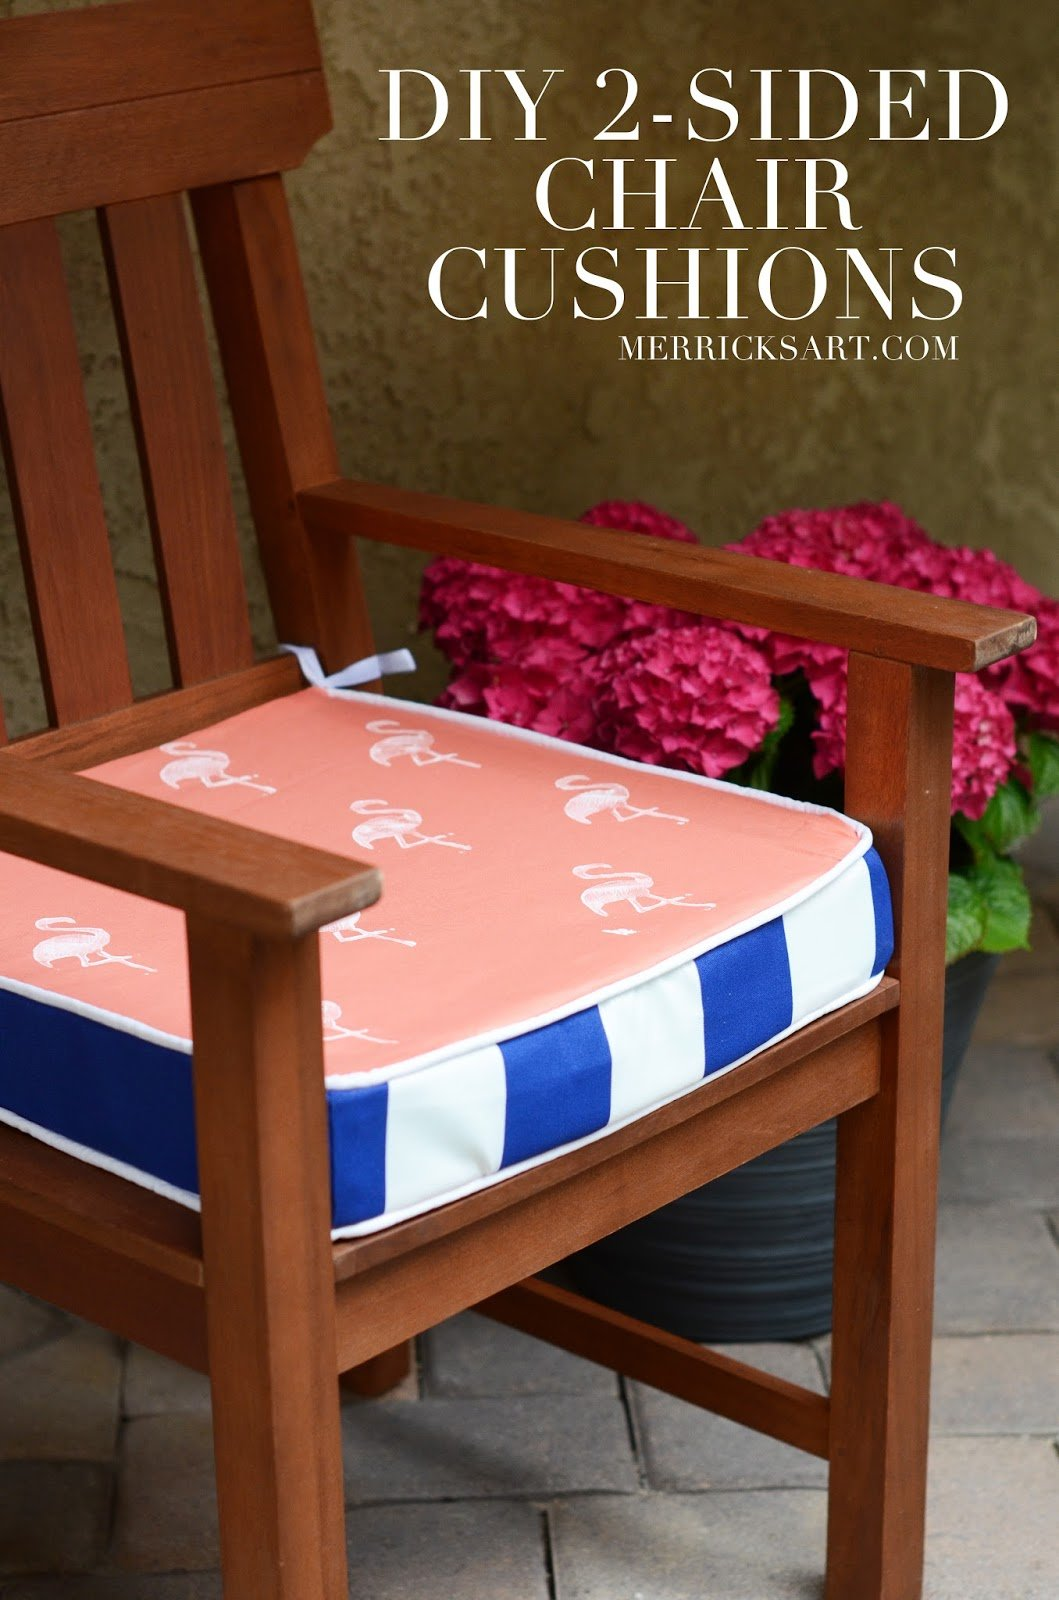 Popular Merrick us Art Style Sewing for the Everyday GirlDIY FRIDAY BACKYARD BBQ SIDED CHAIR CUSHIONS WITH PIPING TUTORIAL Merrick us Art